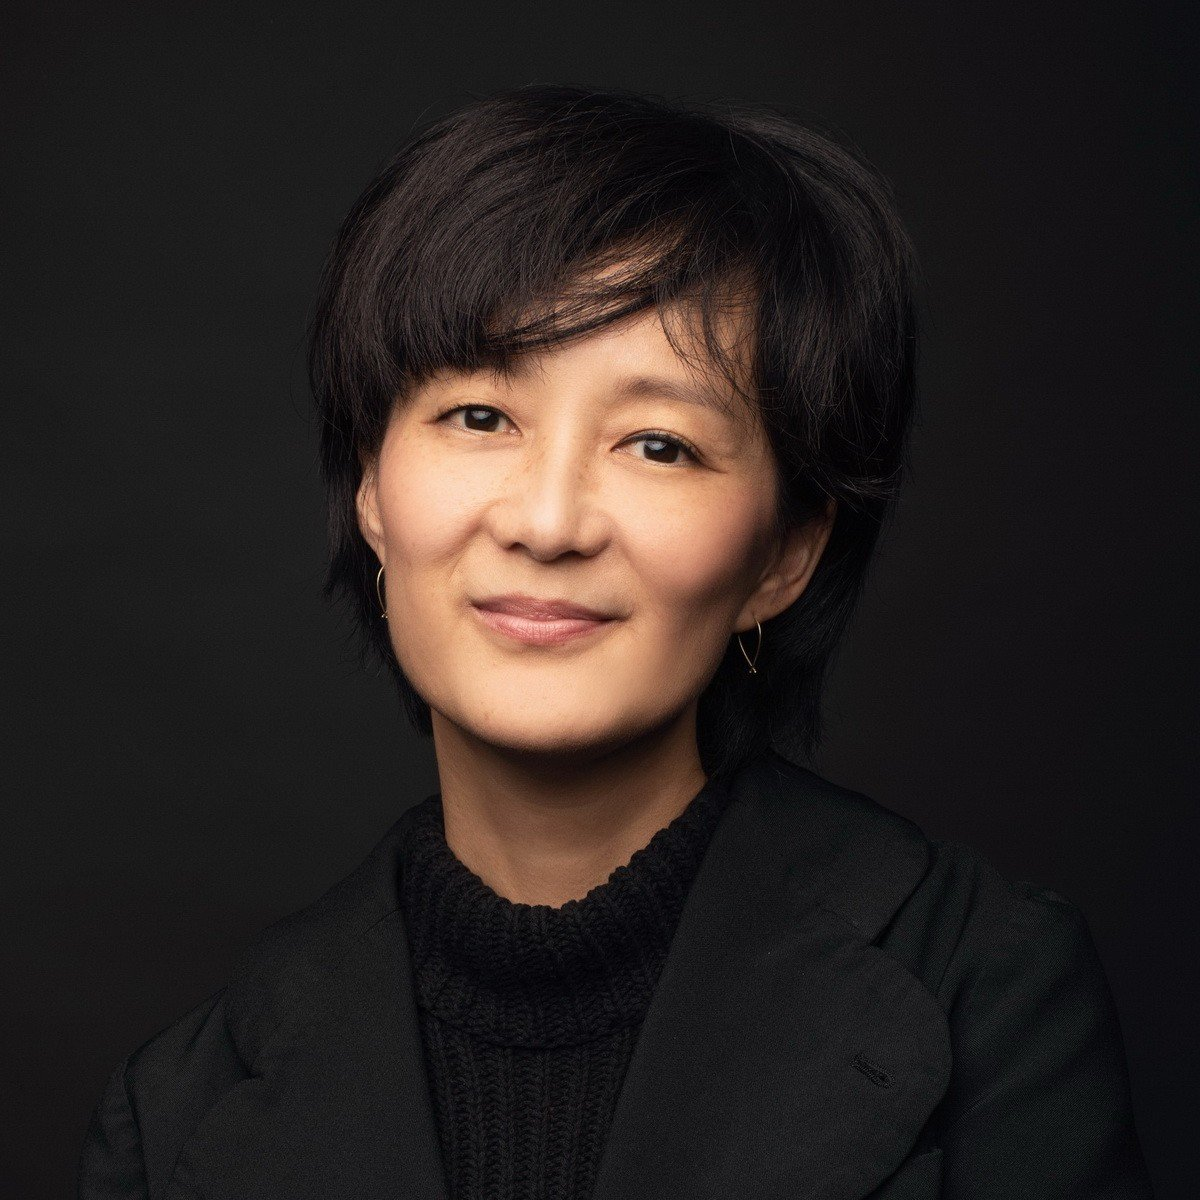 PATRICIA RHEE ELEVATED TO AIA COLLEGE OF FELLOWS